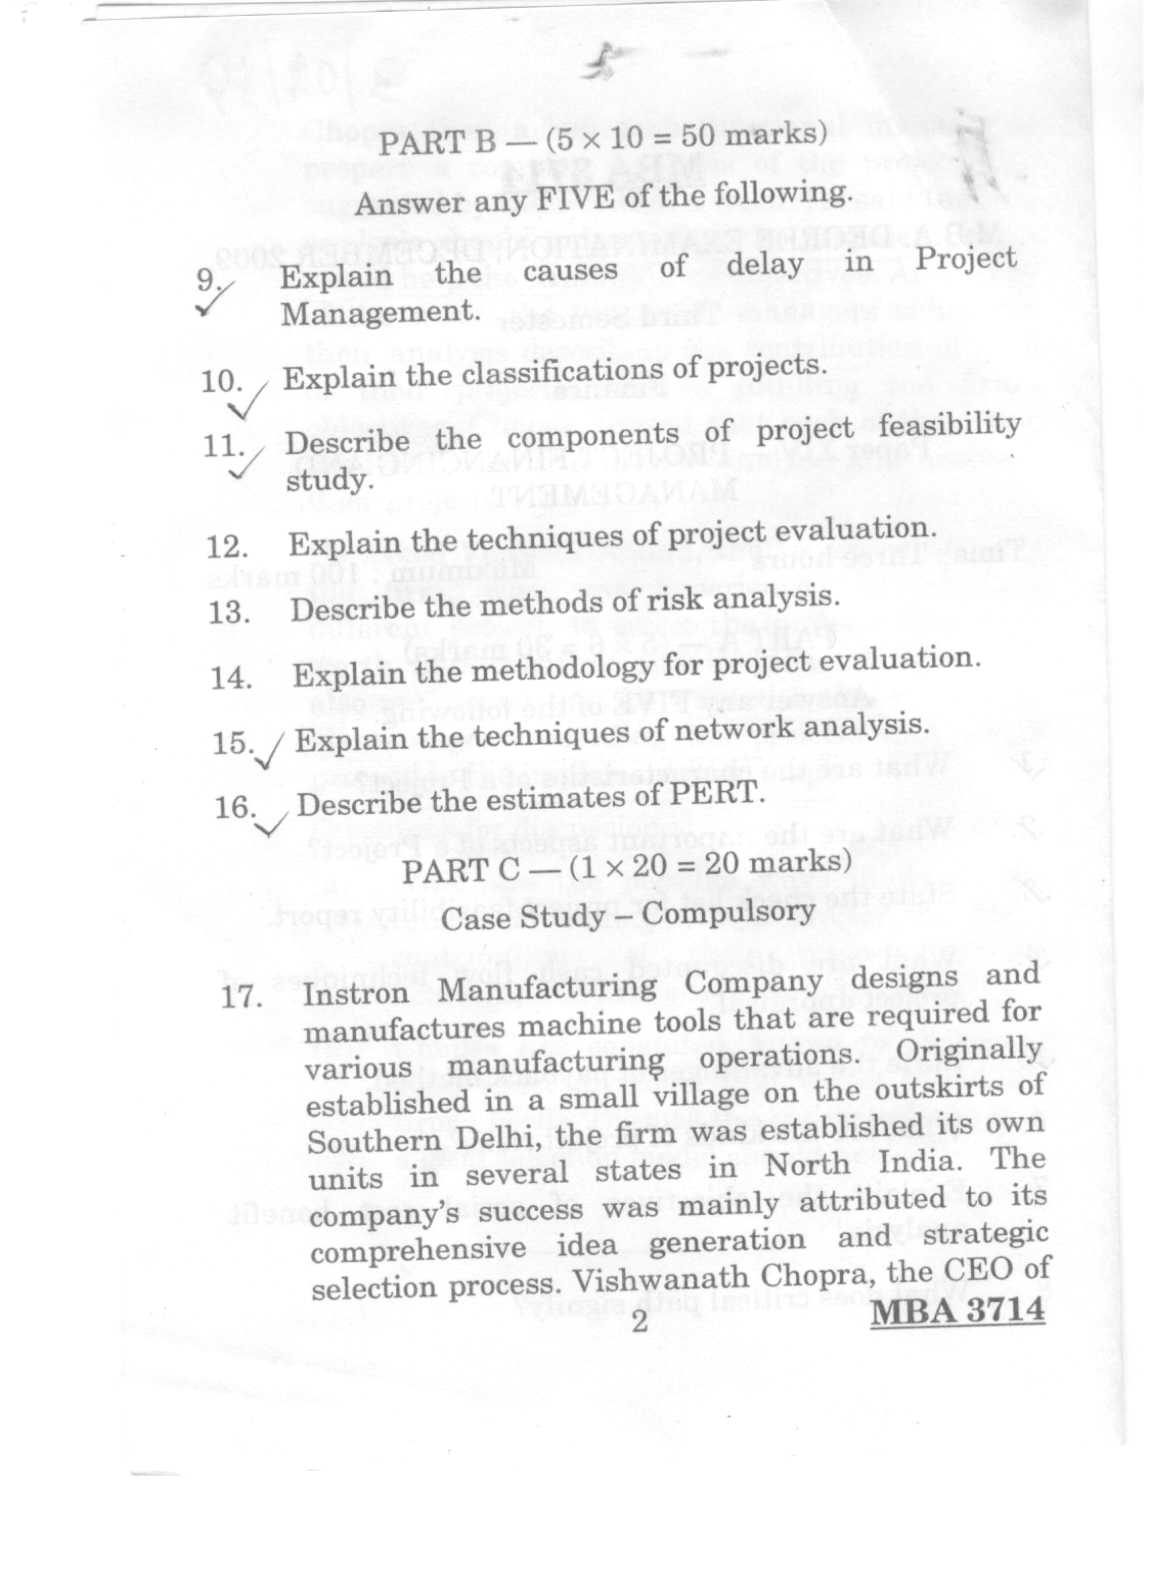 mba thesis paper Dreaming about a perfect mba thesis paper sample need writing help we are one of the best mba dissertation services to address in this case and we are online 24/7.